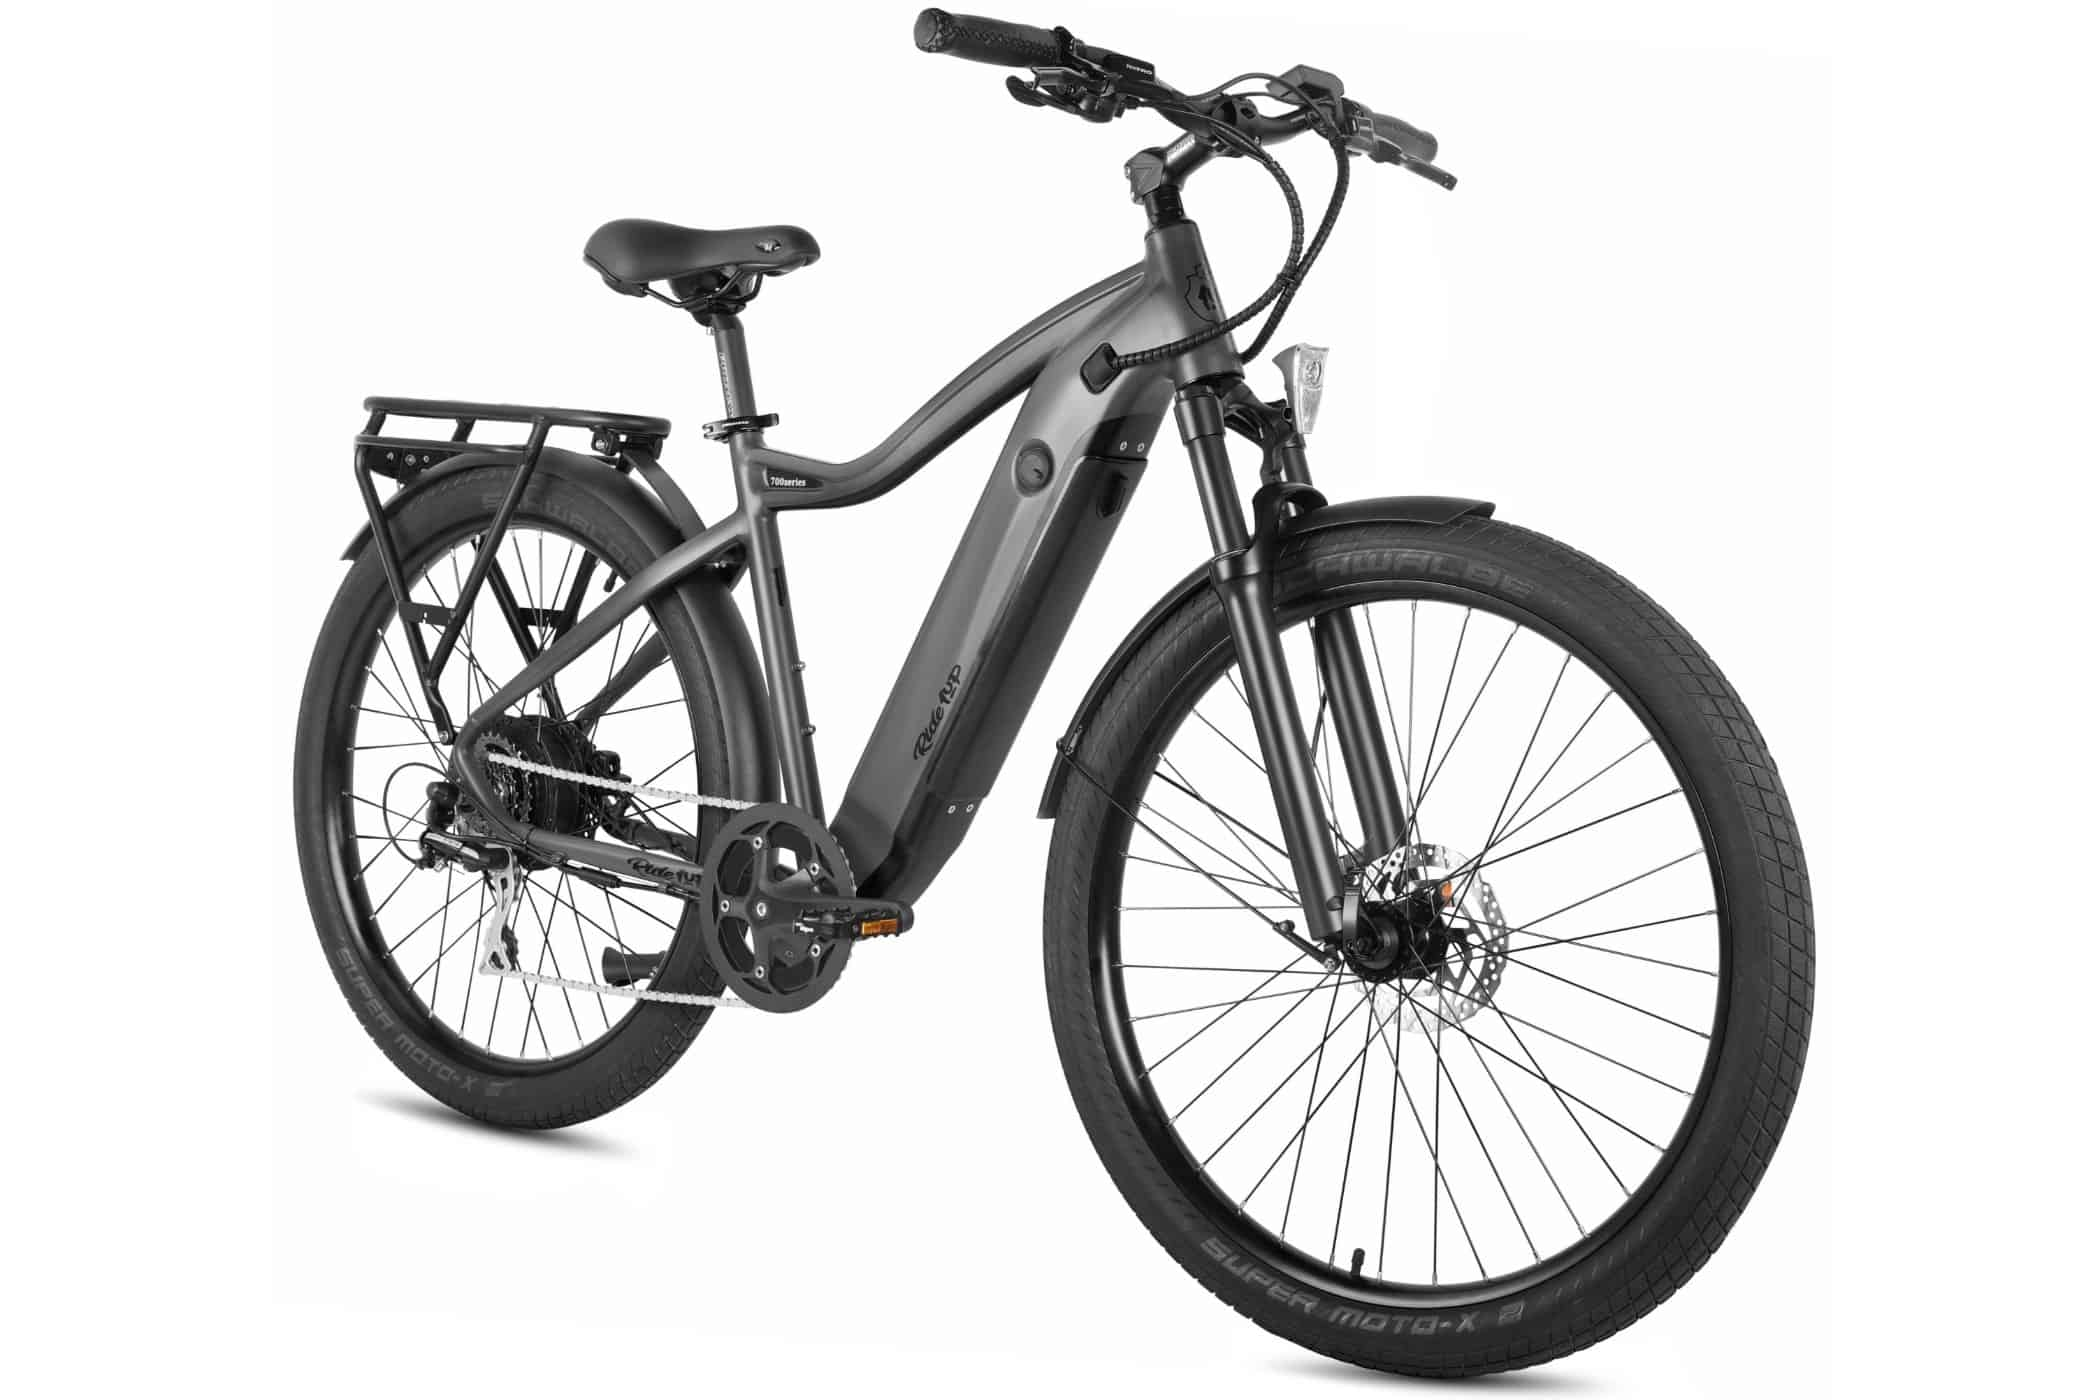 700 SERIES Ebike Review – Does it Check All The Boxes on Our List? 2